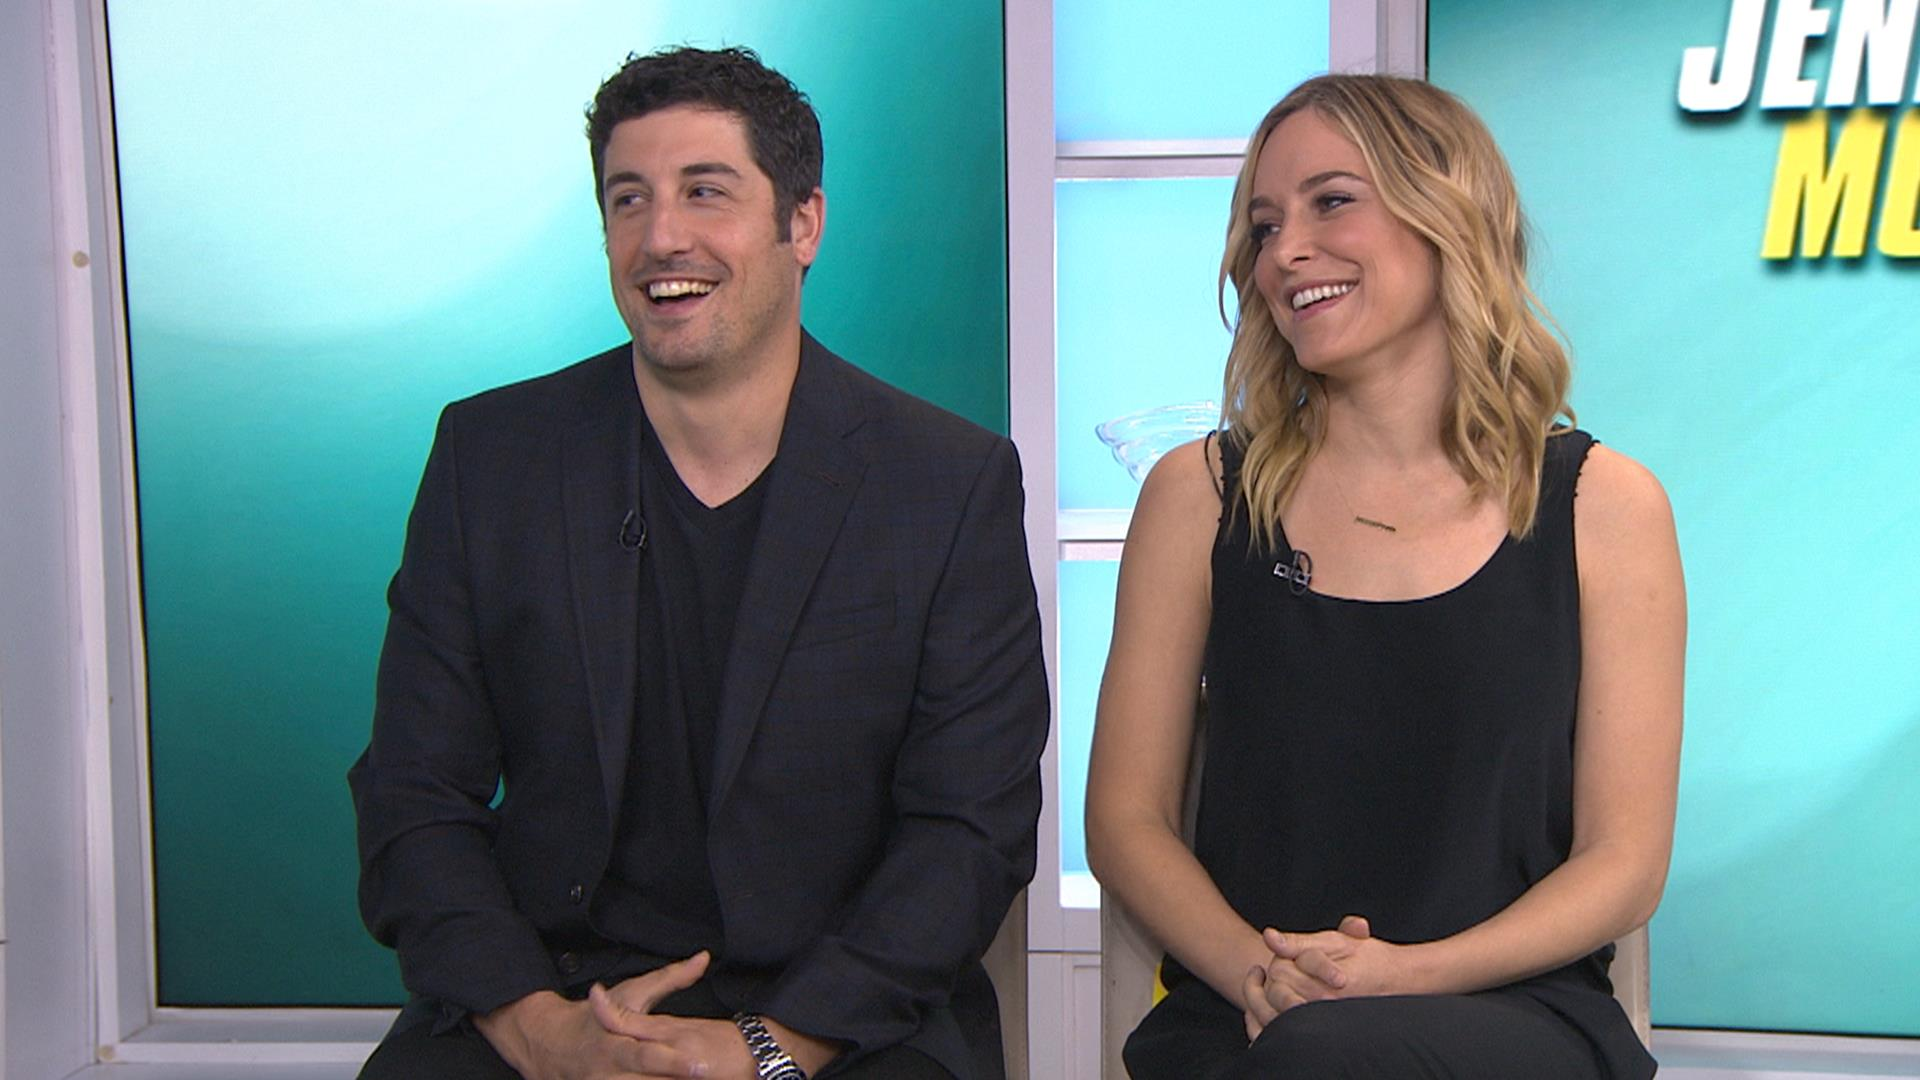 Jason Biggs, Jenny Mollen team up for new comedy Amateur Night